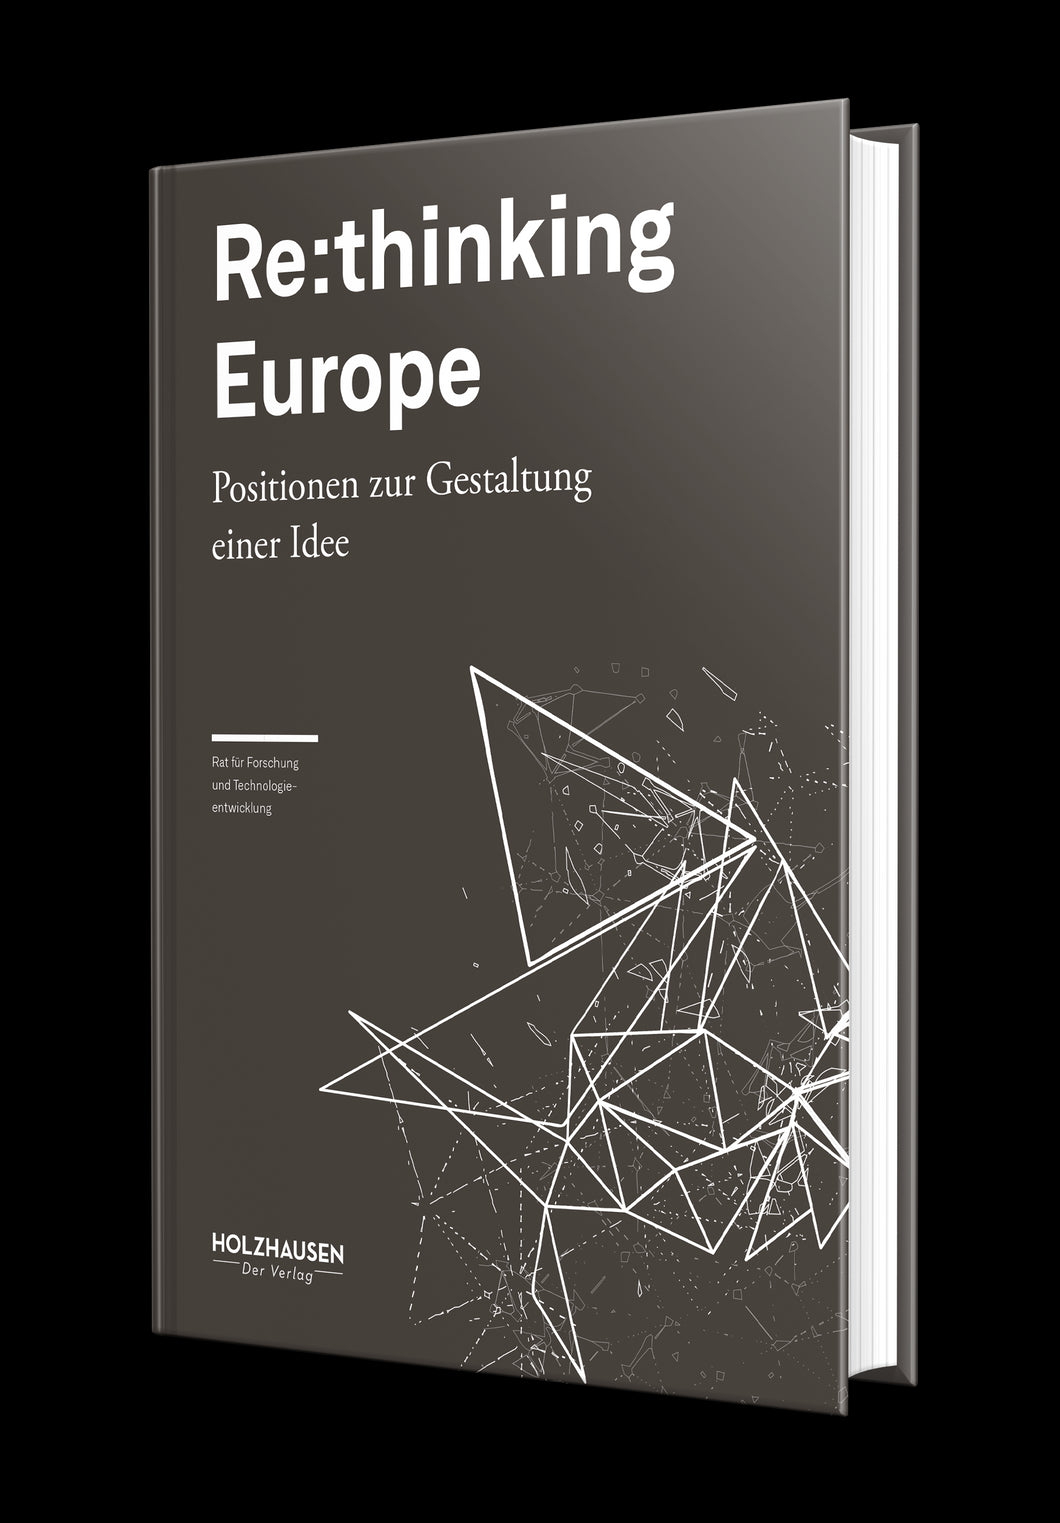 Re:thinking Europe - Positionen zur Gestaltung einer Idee